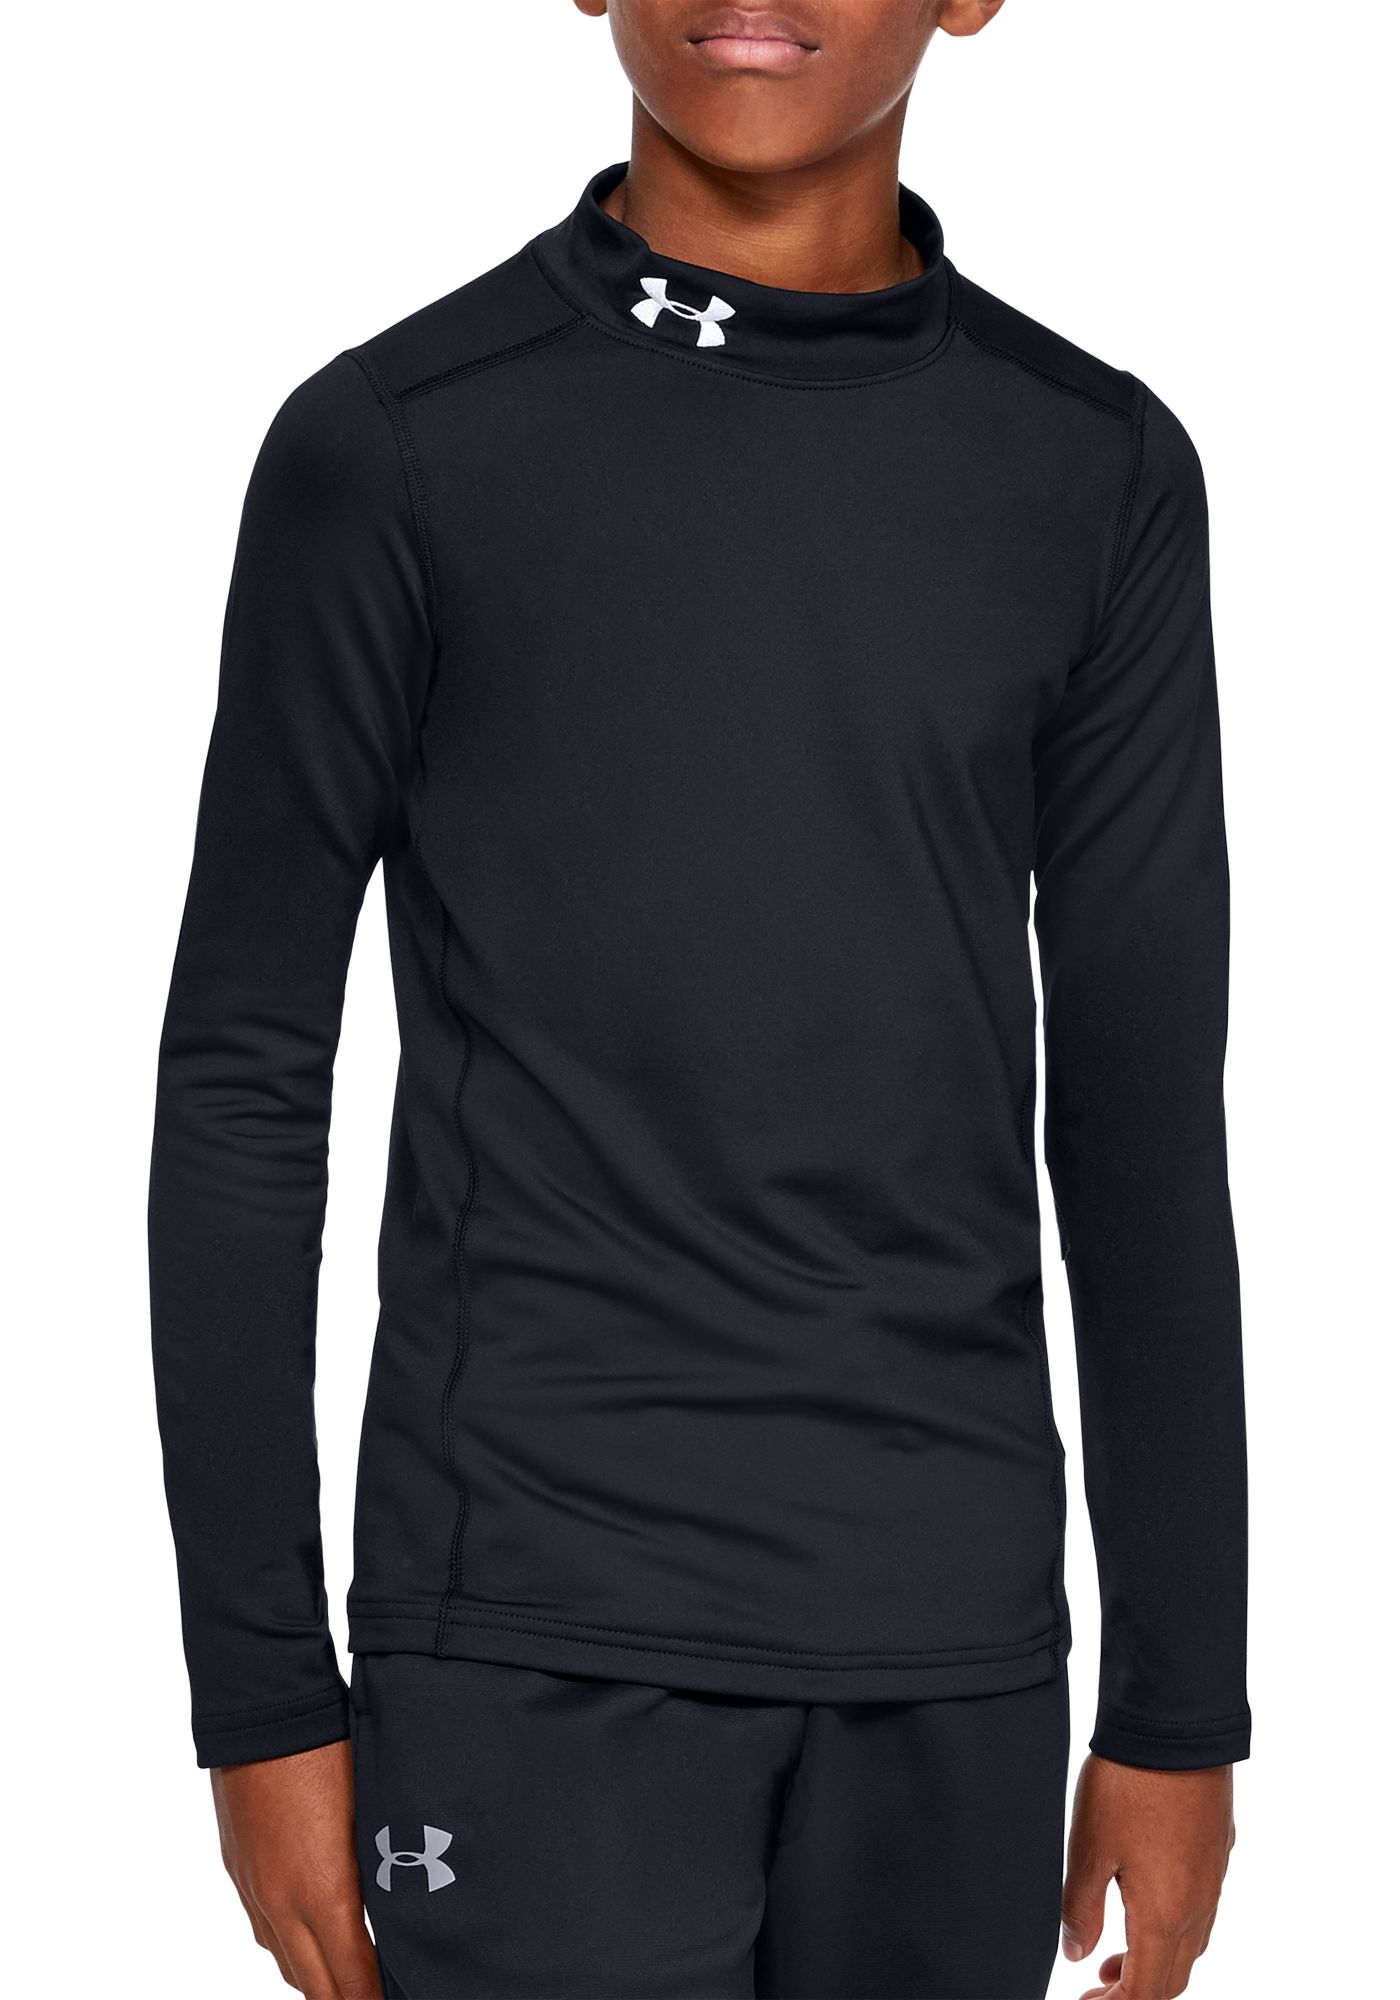 Under Armour Boy's ColdGear Mock Neck Long Sleeve Shirt